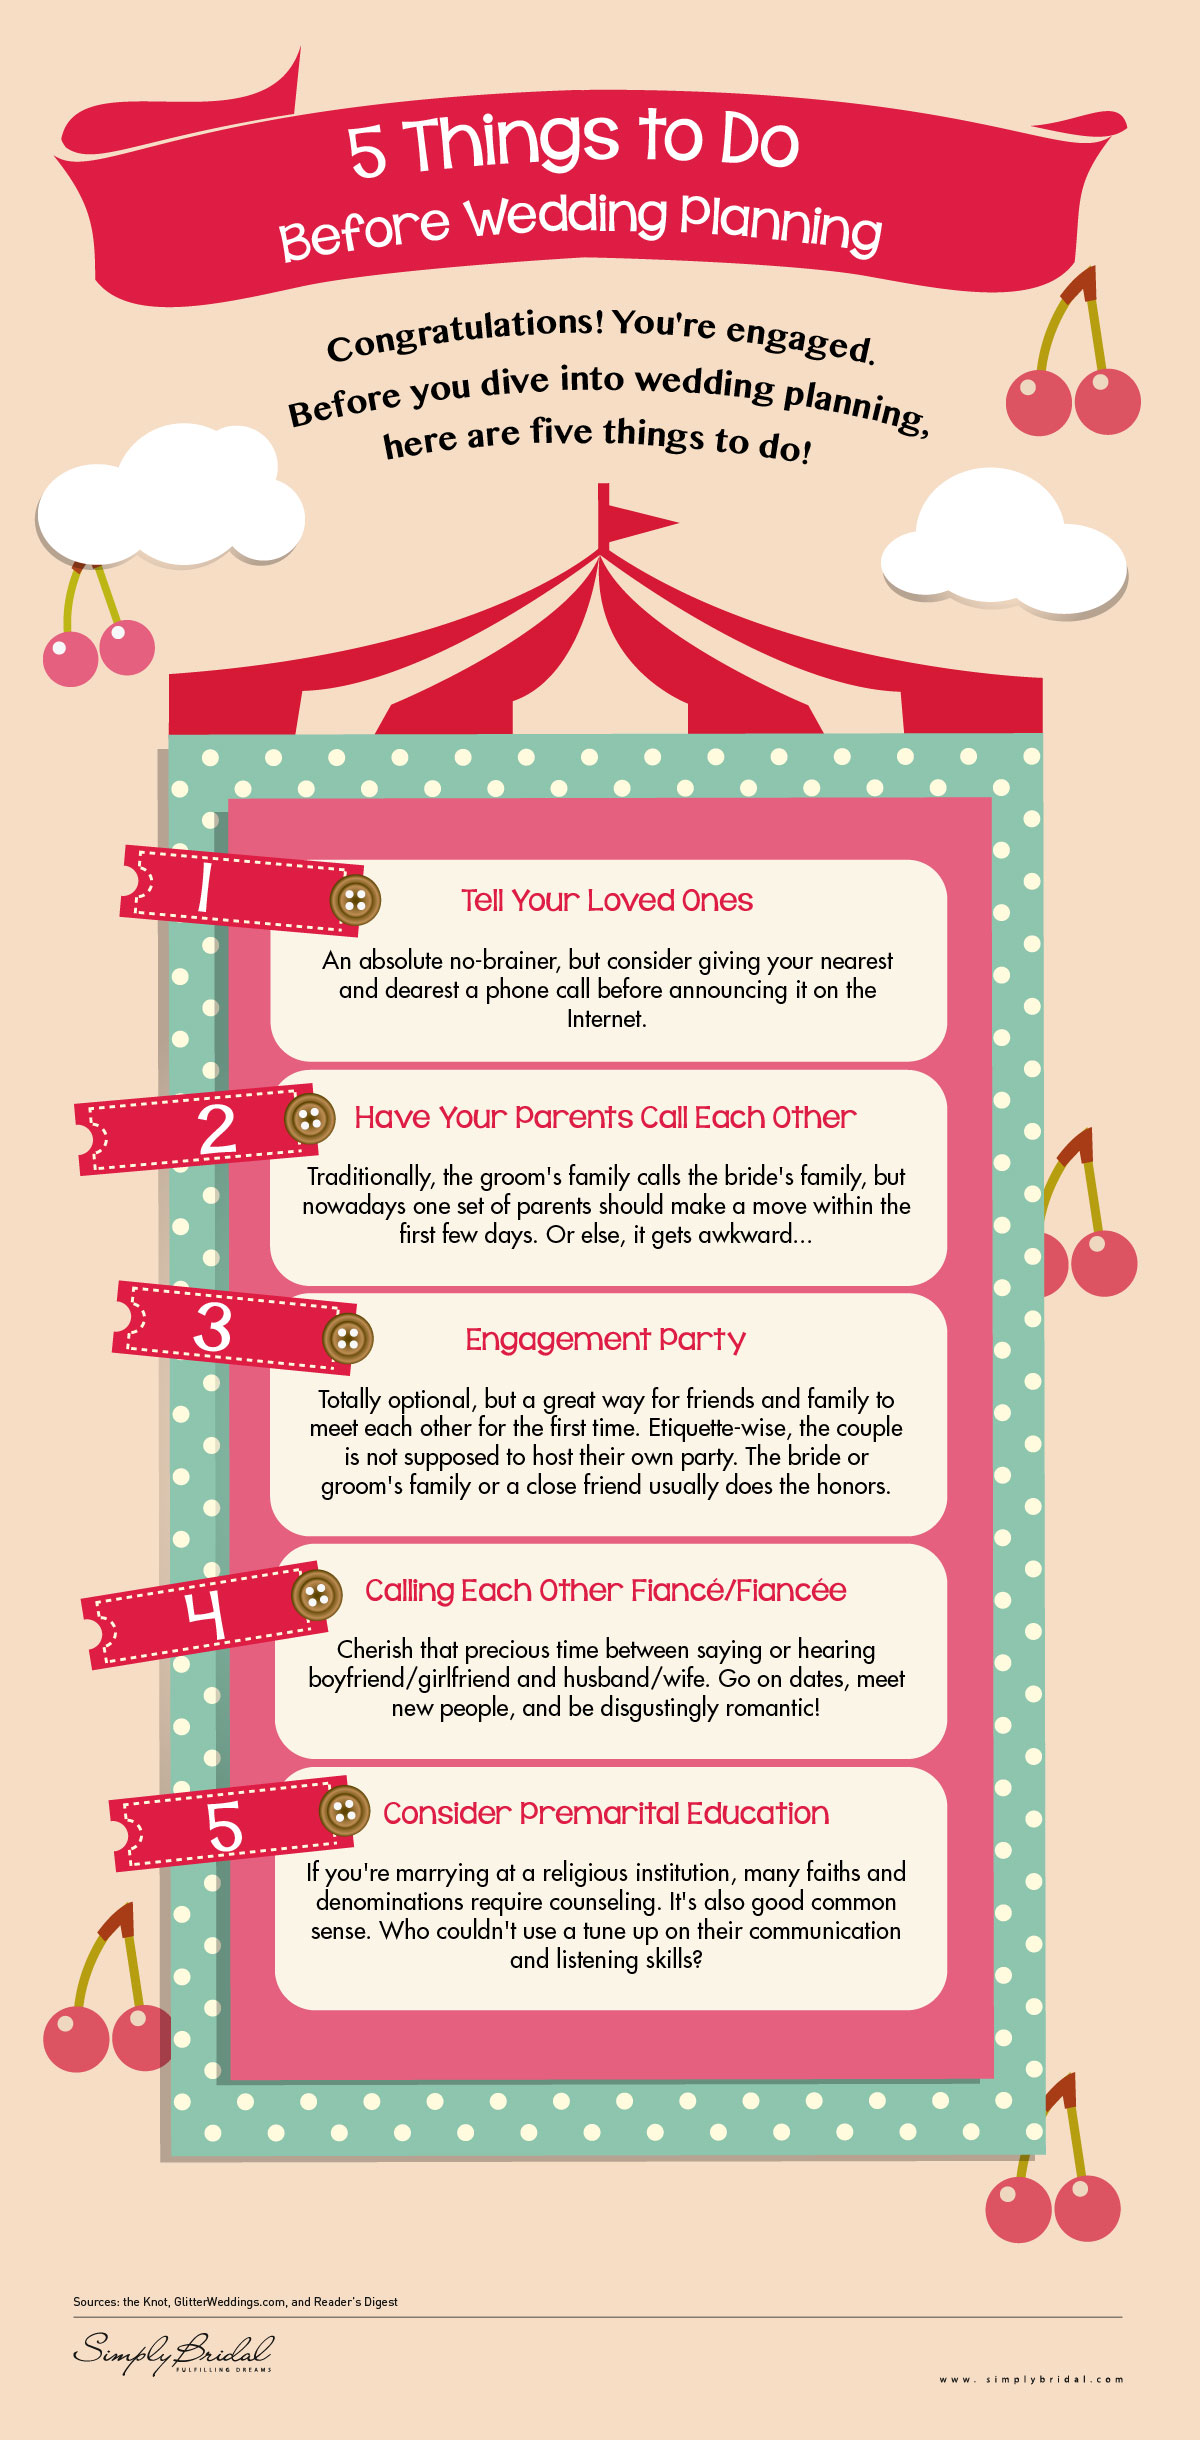 fun facts from simply bridal 5 things to do before wedding